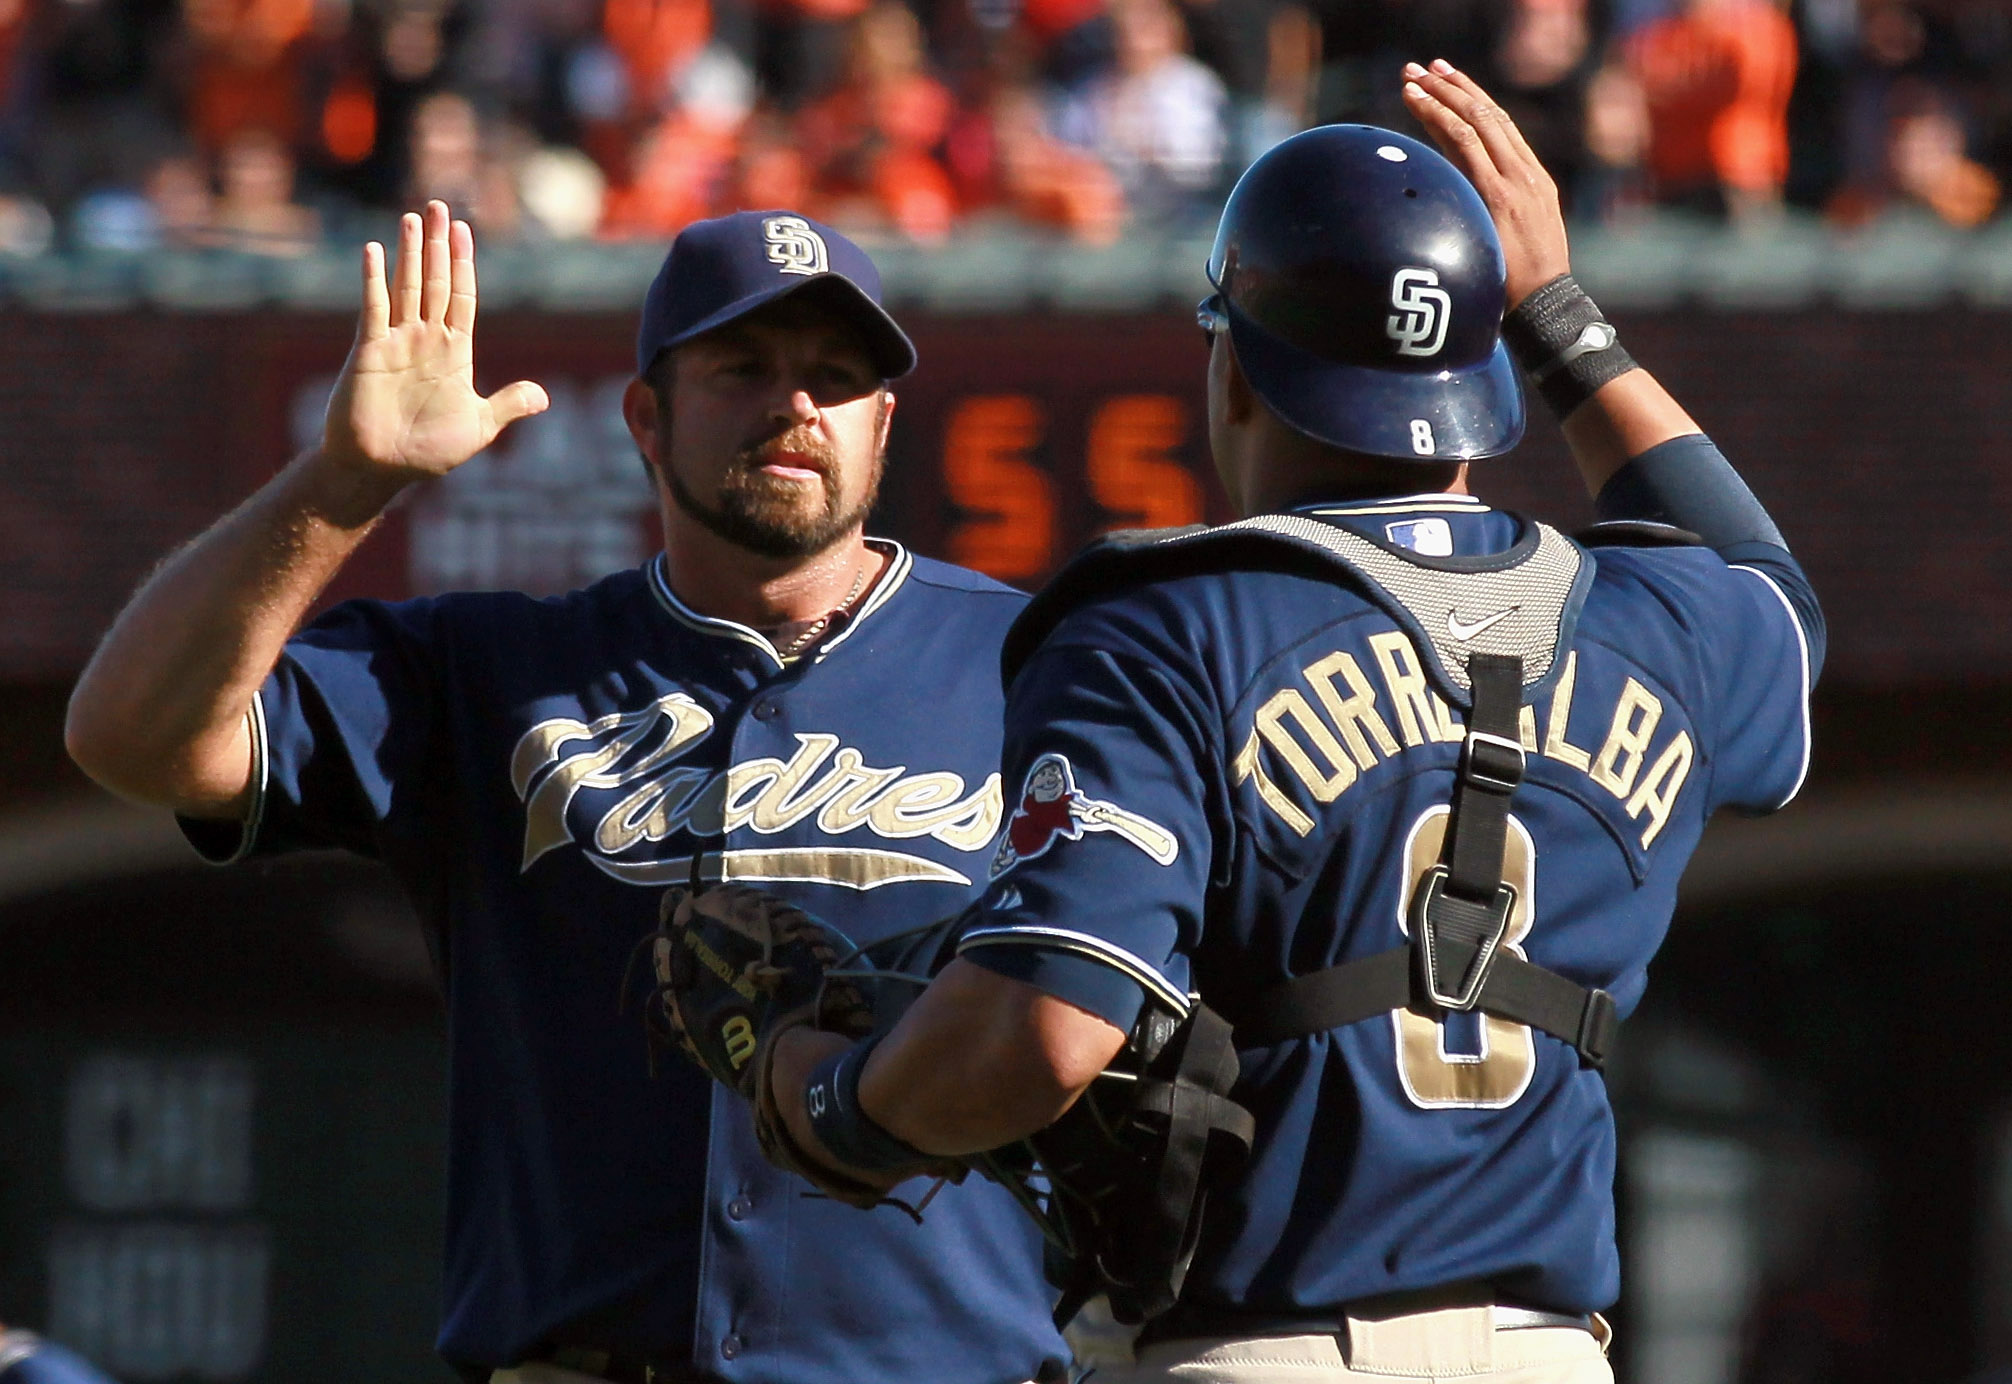 SAN FRANCISCO - OCTOBER 02:  Heath Bell #21 of the San Diego Padres is congratulated by teammate Yorvit Torrealba #8 at the end of the game against the San Francisco Giants at AT&T Park on October 2, 2010 in San Francisco, California. The Padres beat the